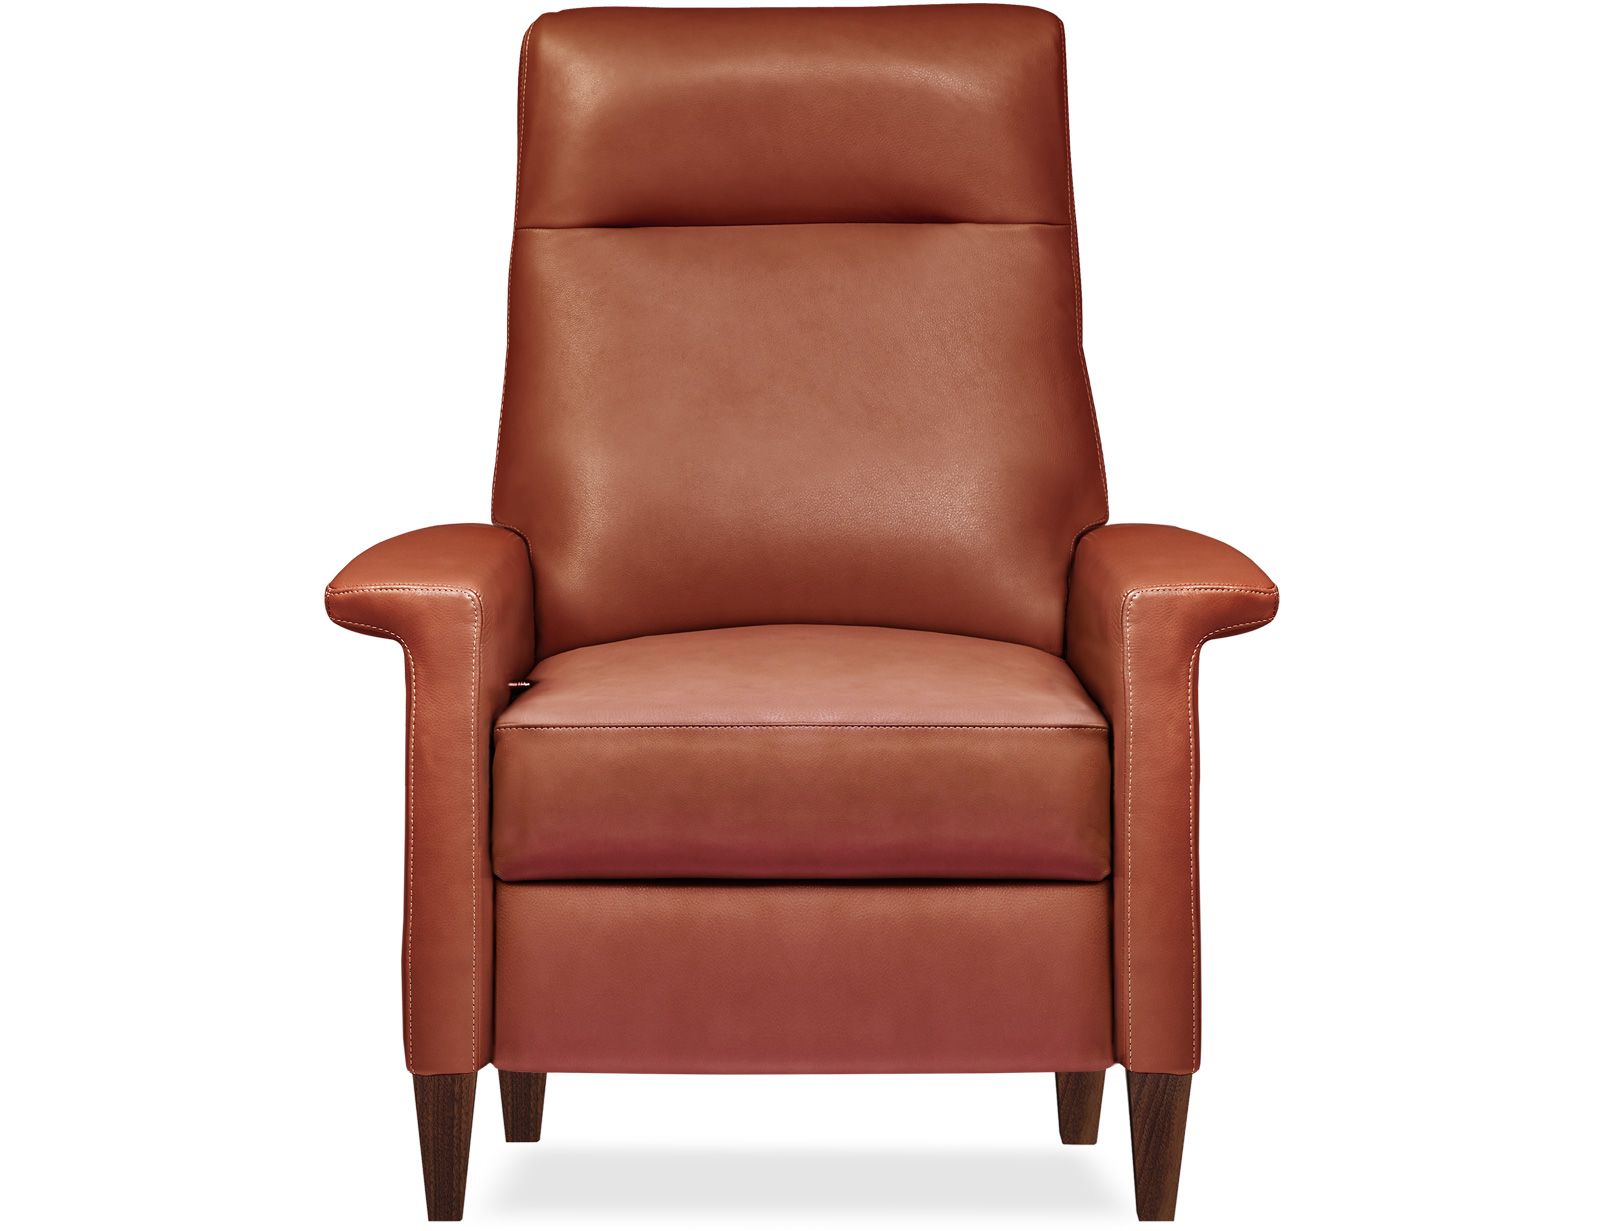 american leather fallon comfort recliner